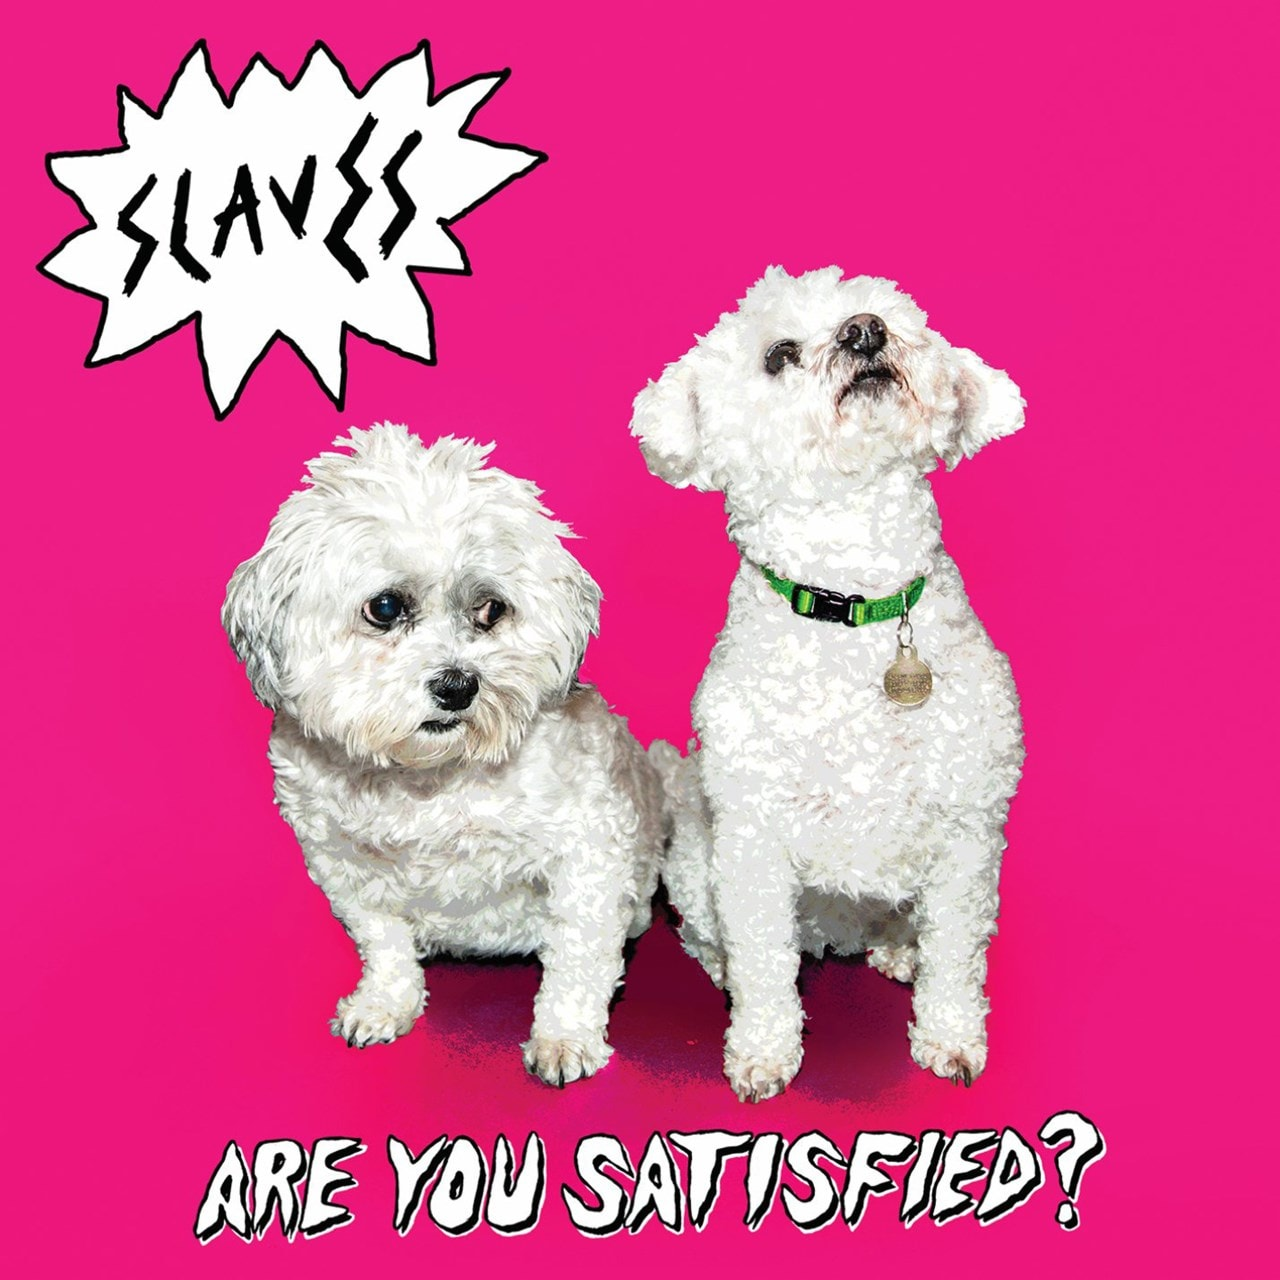 Are You Satisfied? - 1